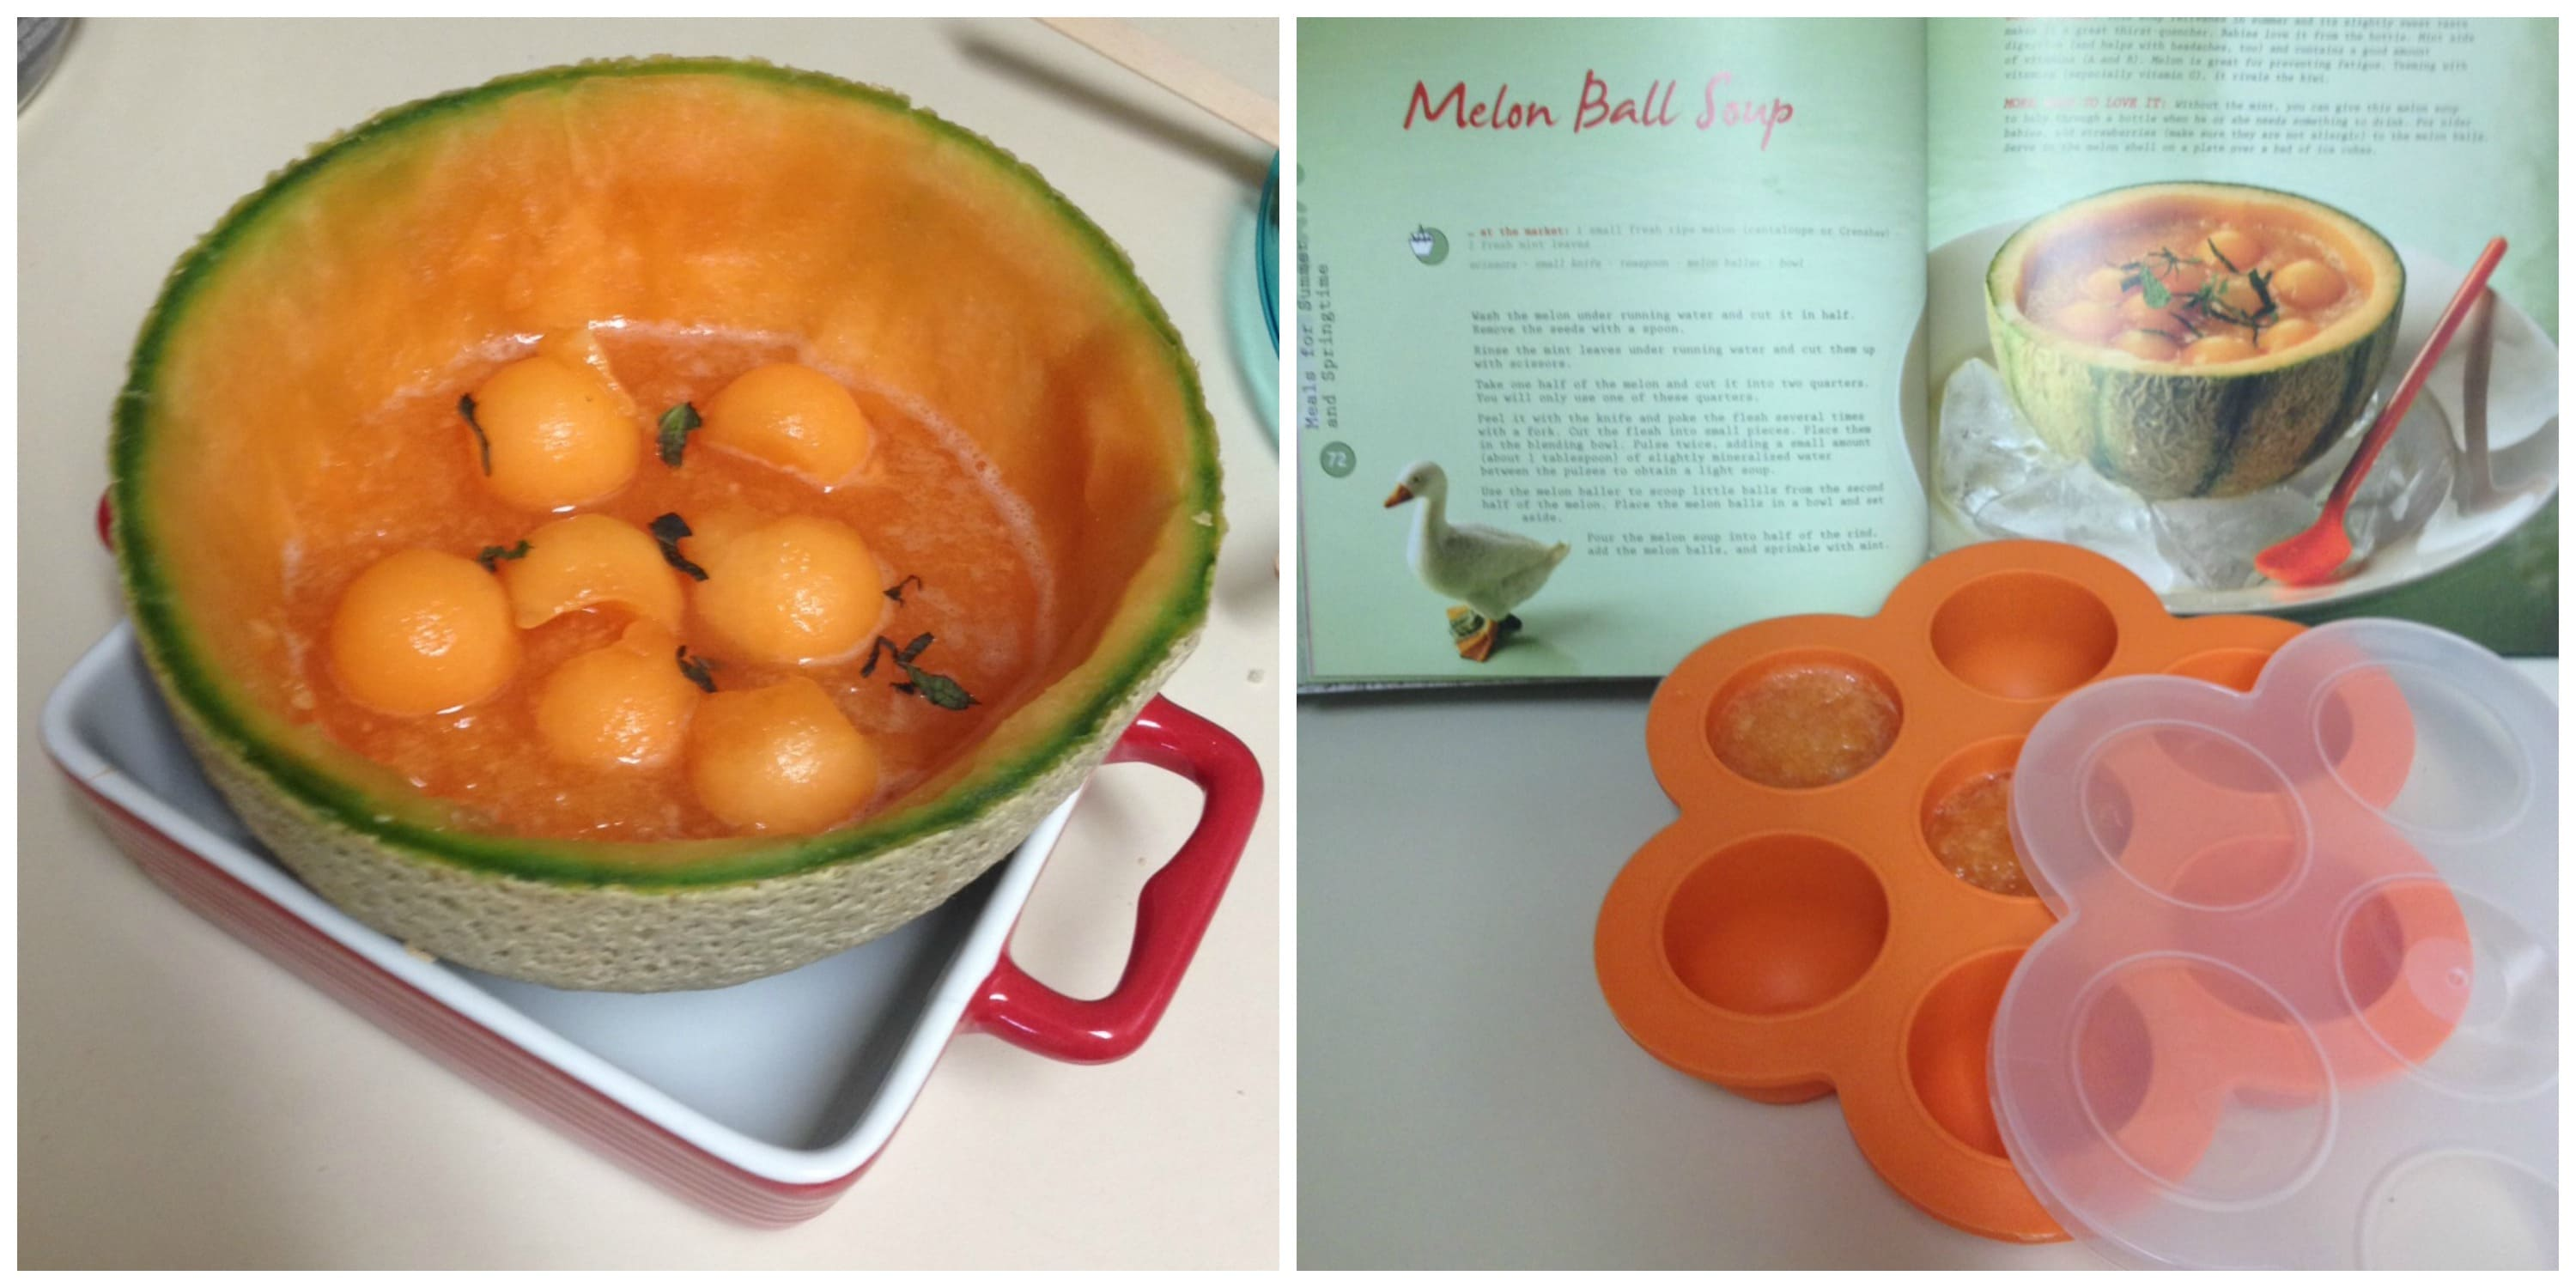 making baby food at home with the Beaba Babycook